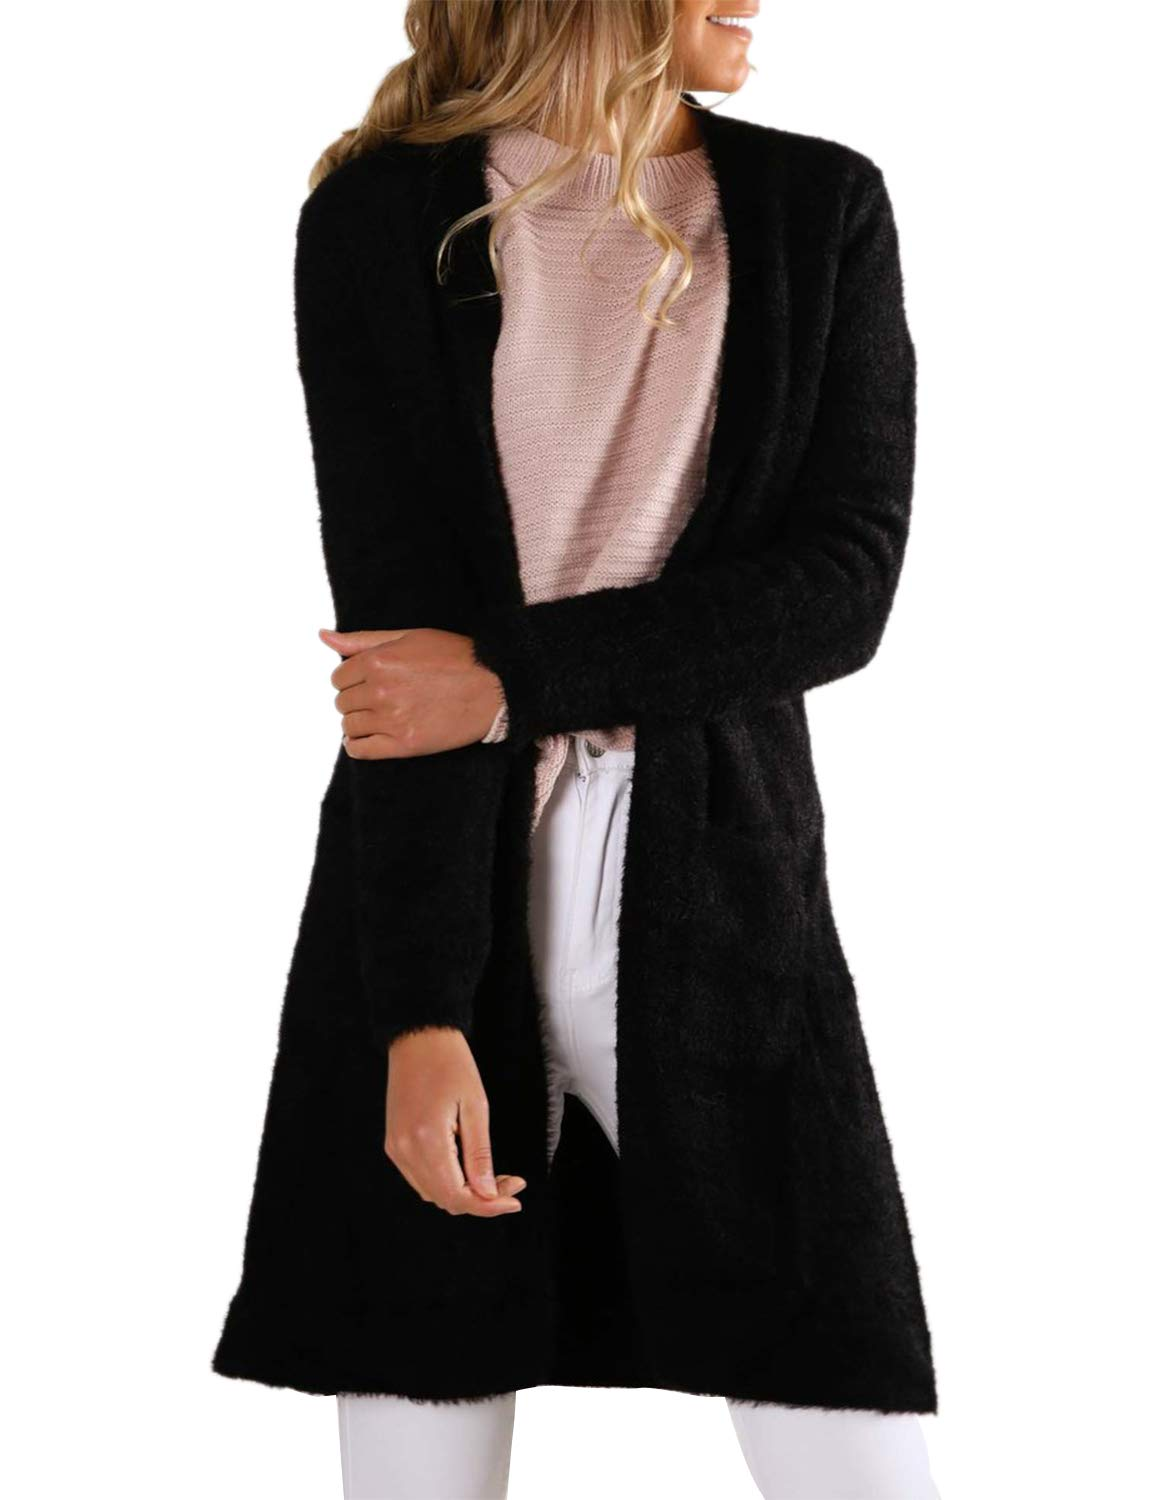 BMJL Women's Long Sleeved Cardigan Longline Sweater Warm with Pockets Black